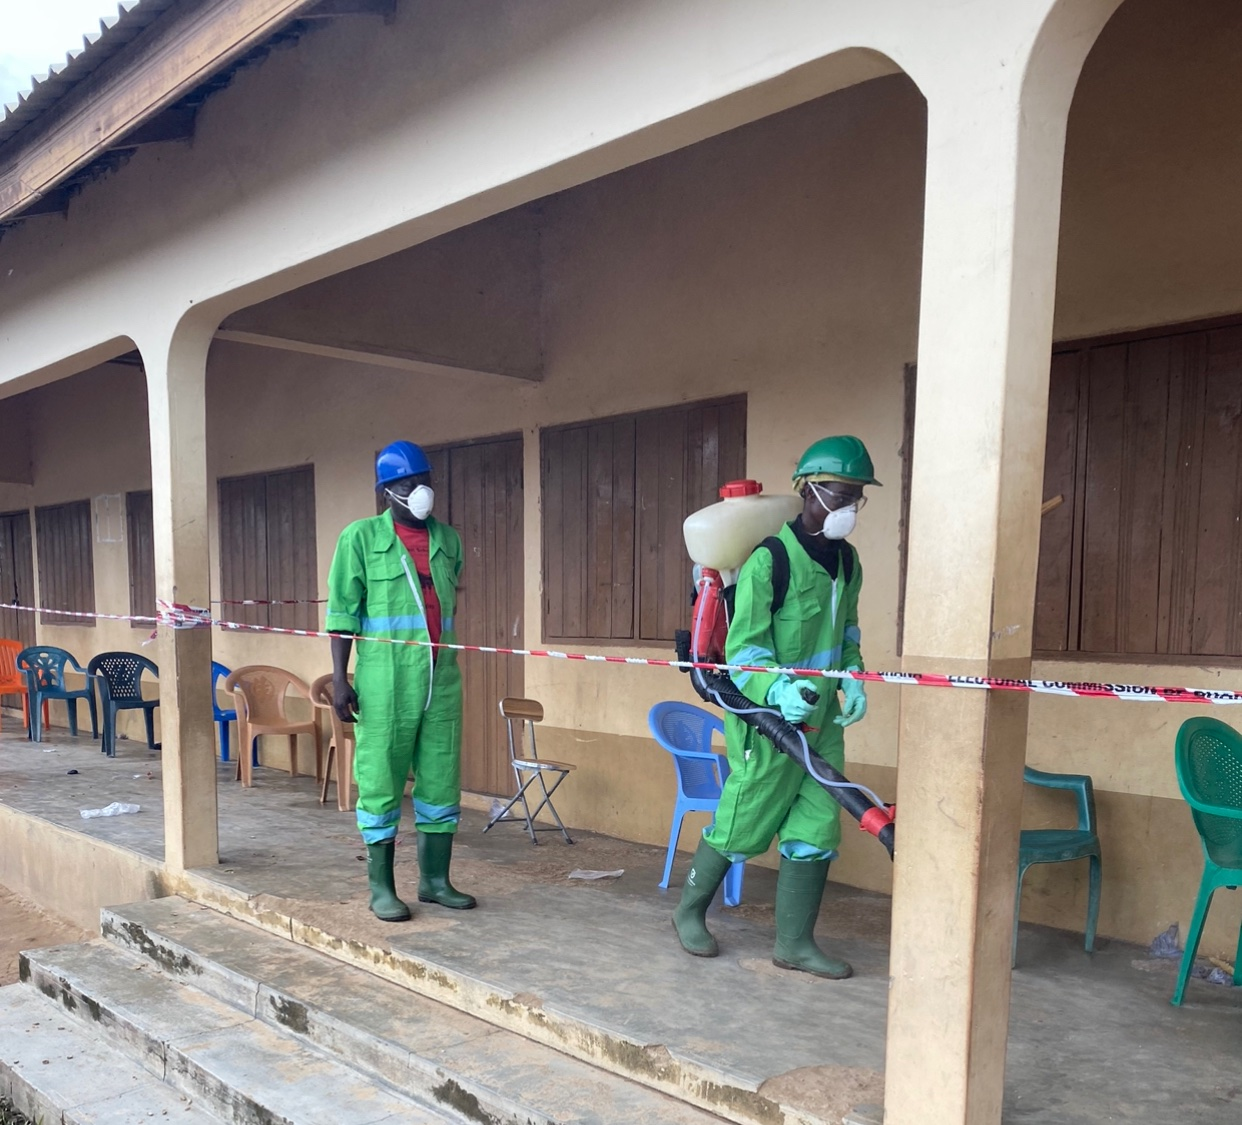 MP Okudzeto Ablakwa partners with Zoomlion to disinfect all polling stations in his constituency twice daily